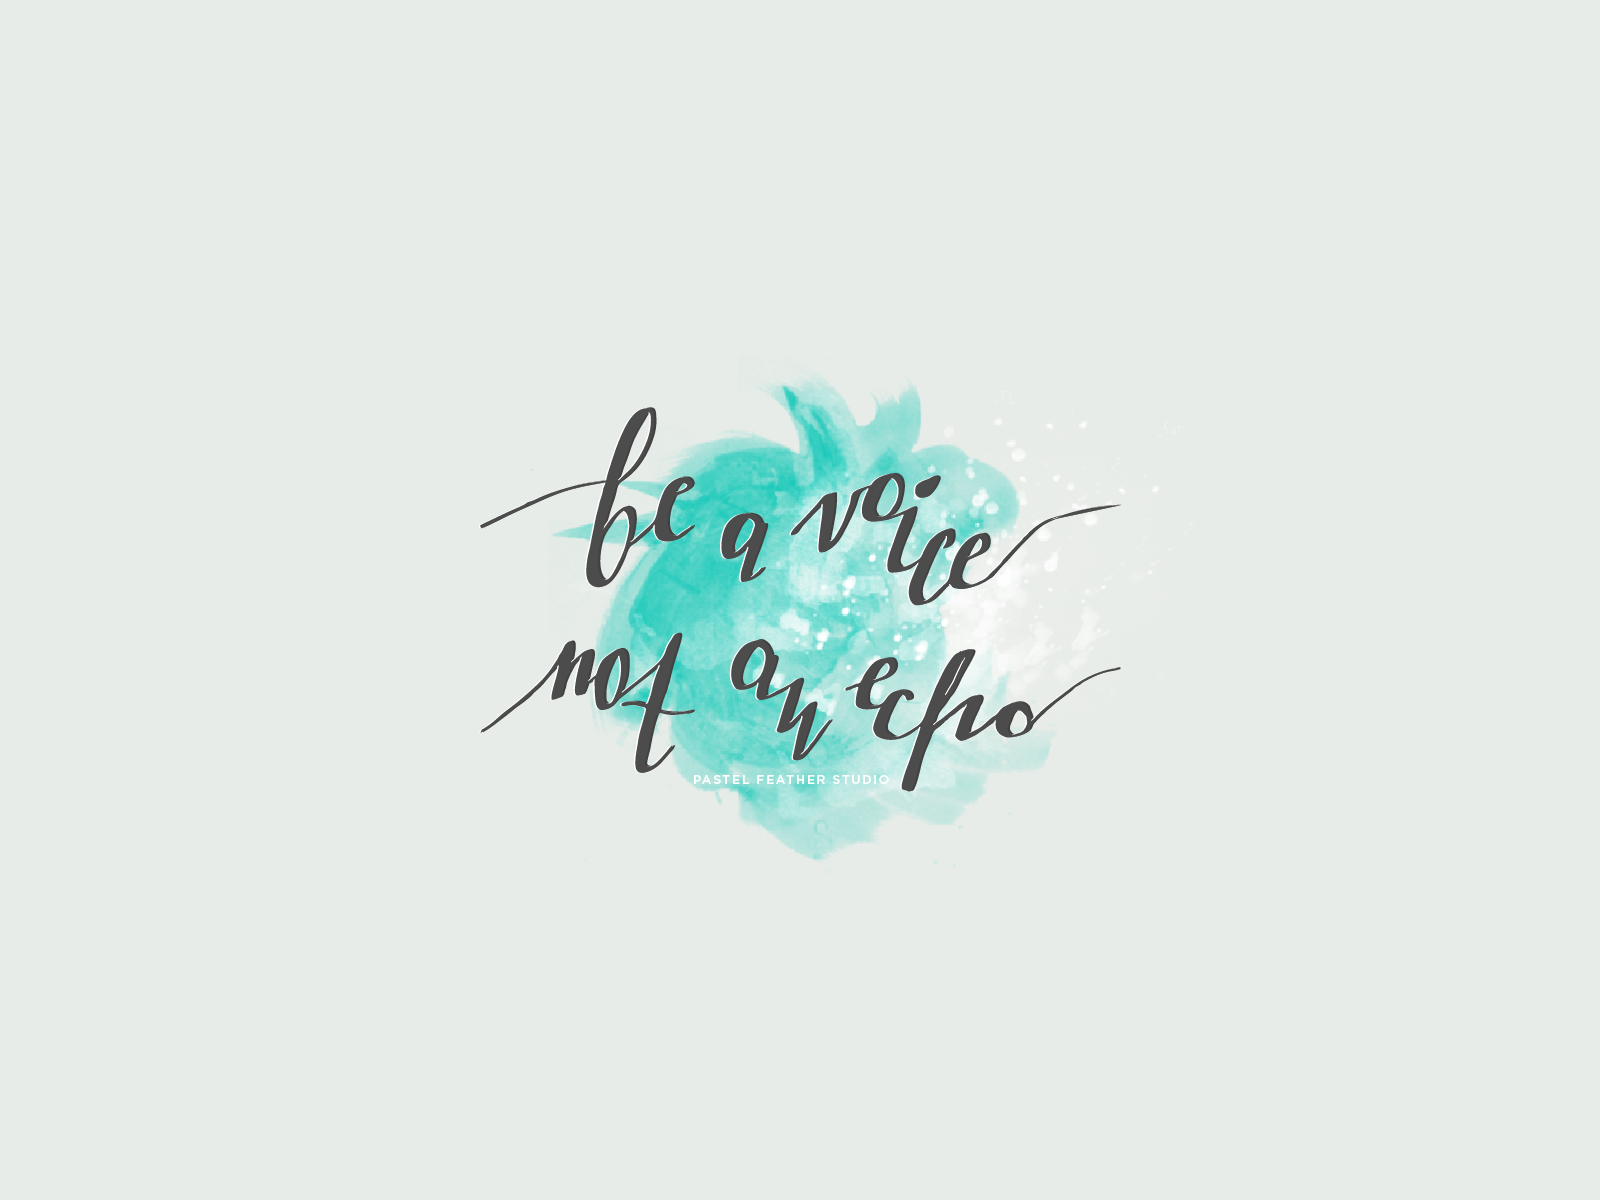 Minimal Be A Voice Quote Desktop Wallpaper Background Calligraphy Wallpaper Inspirational Desktop Wallpaper Watercolor Desktop Wallpaper